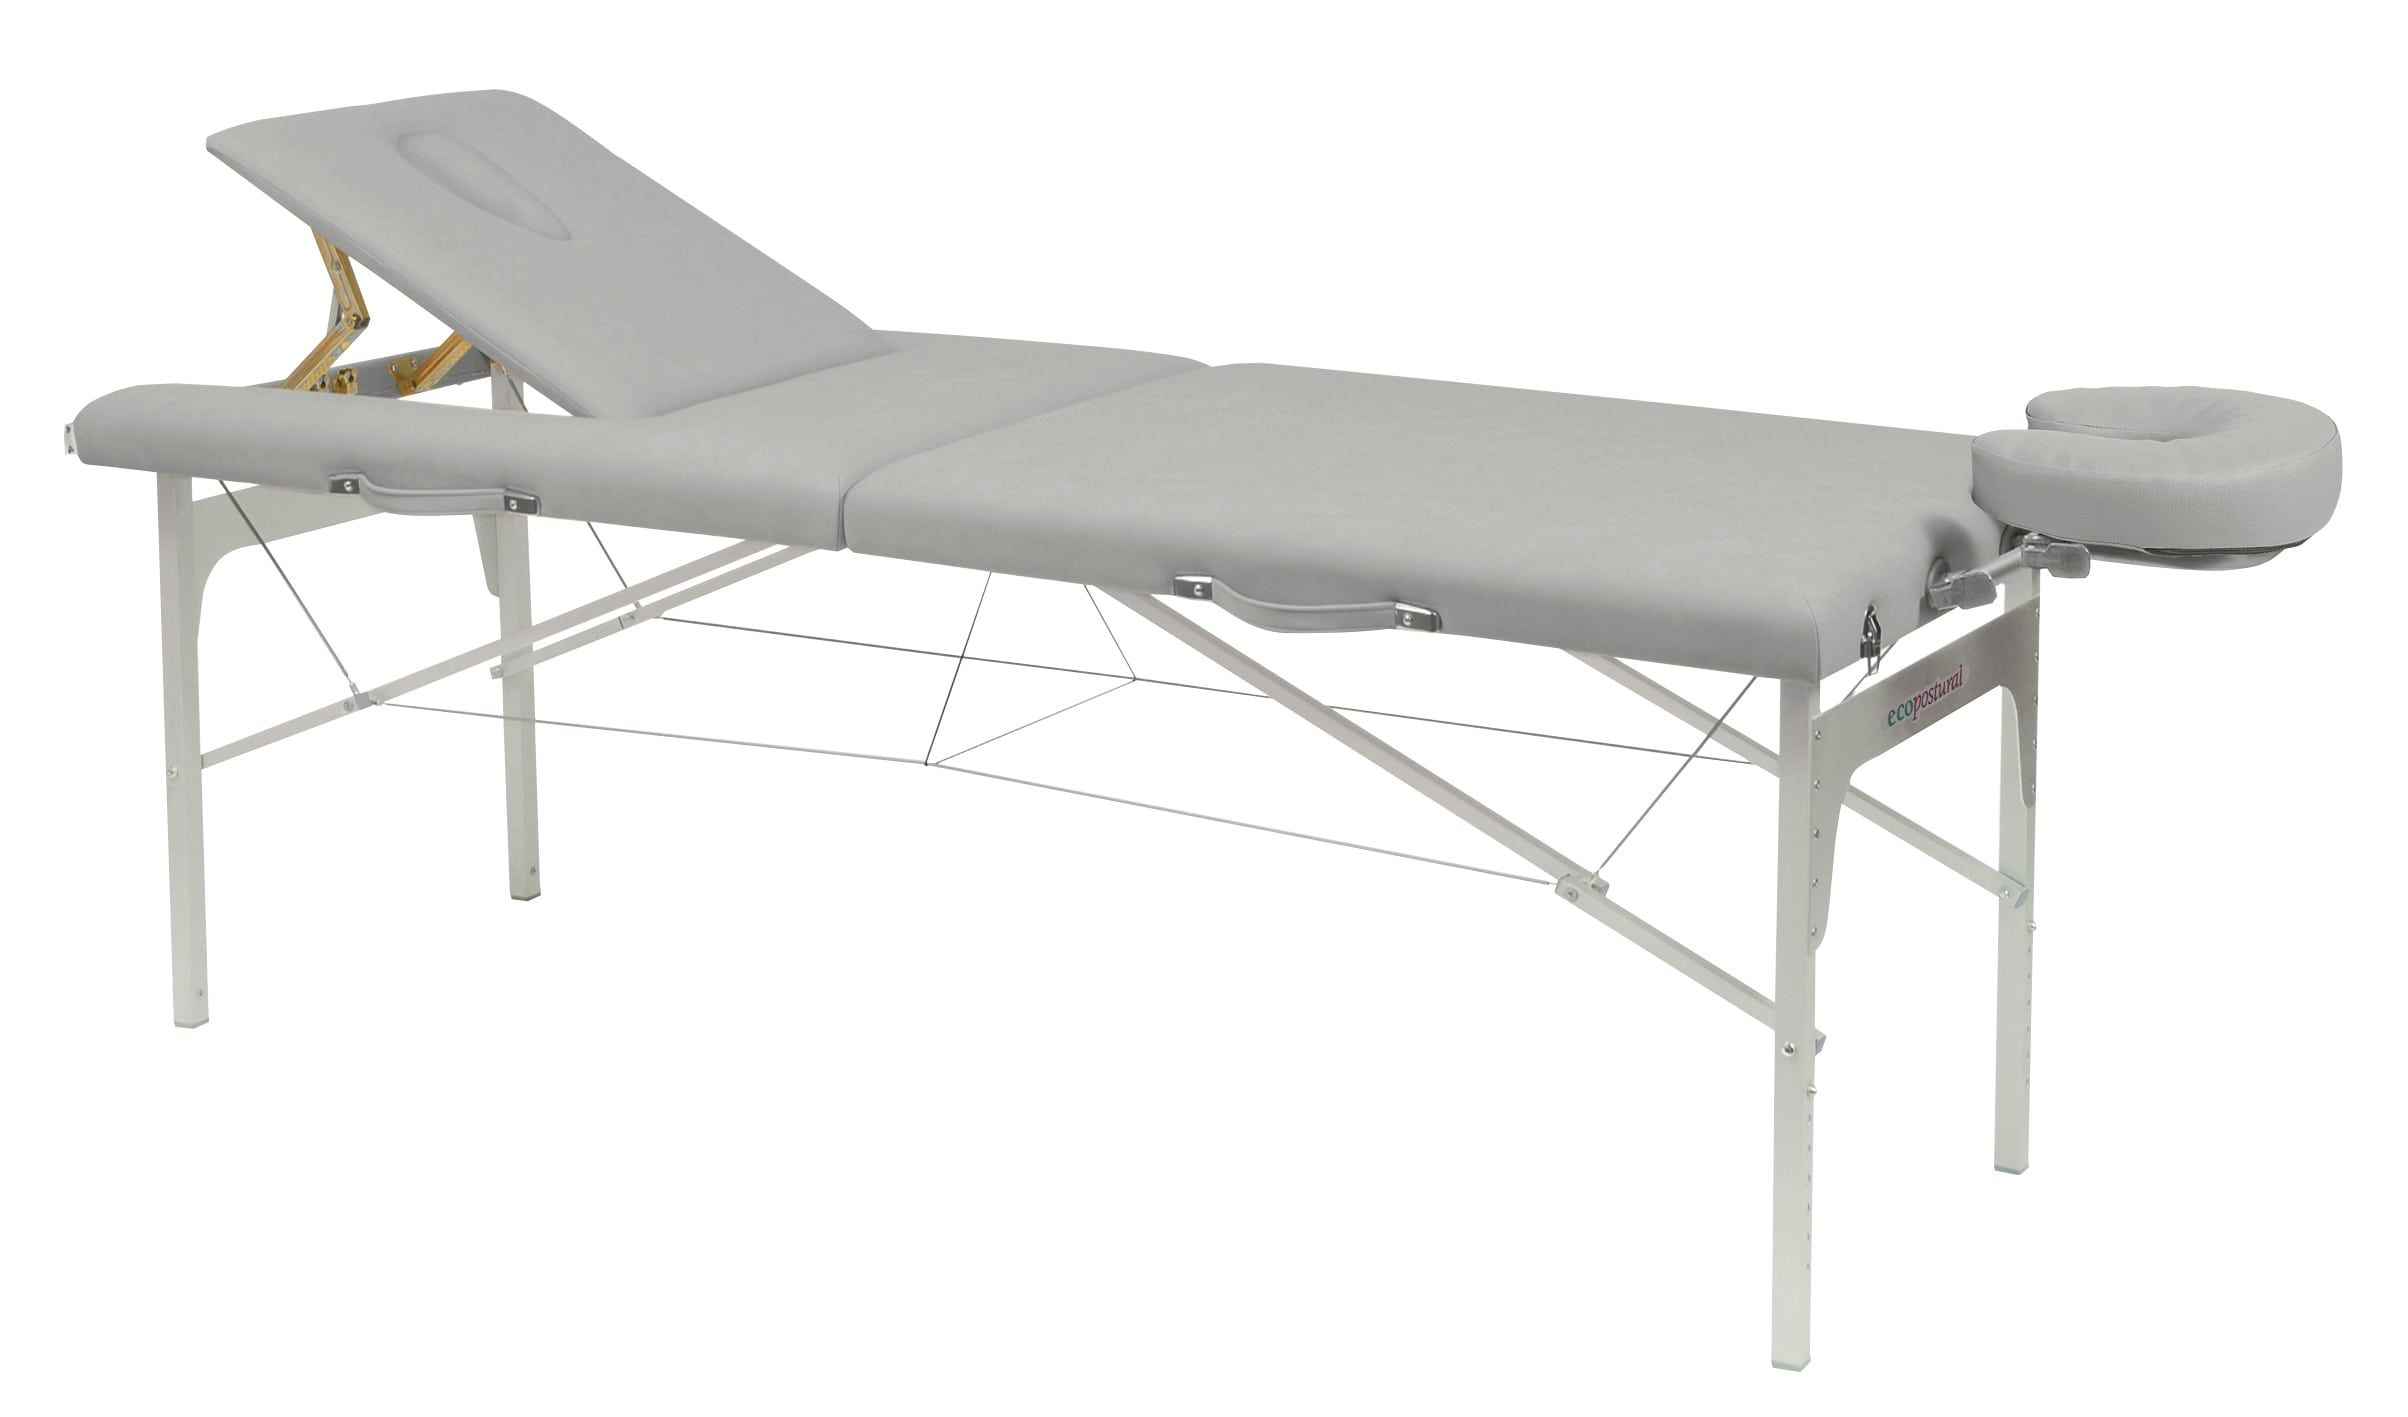 Table Esthtique Pliante Table Esthtique Pliante With